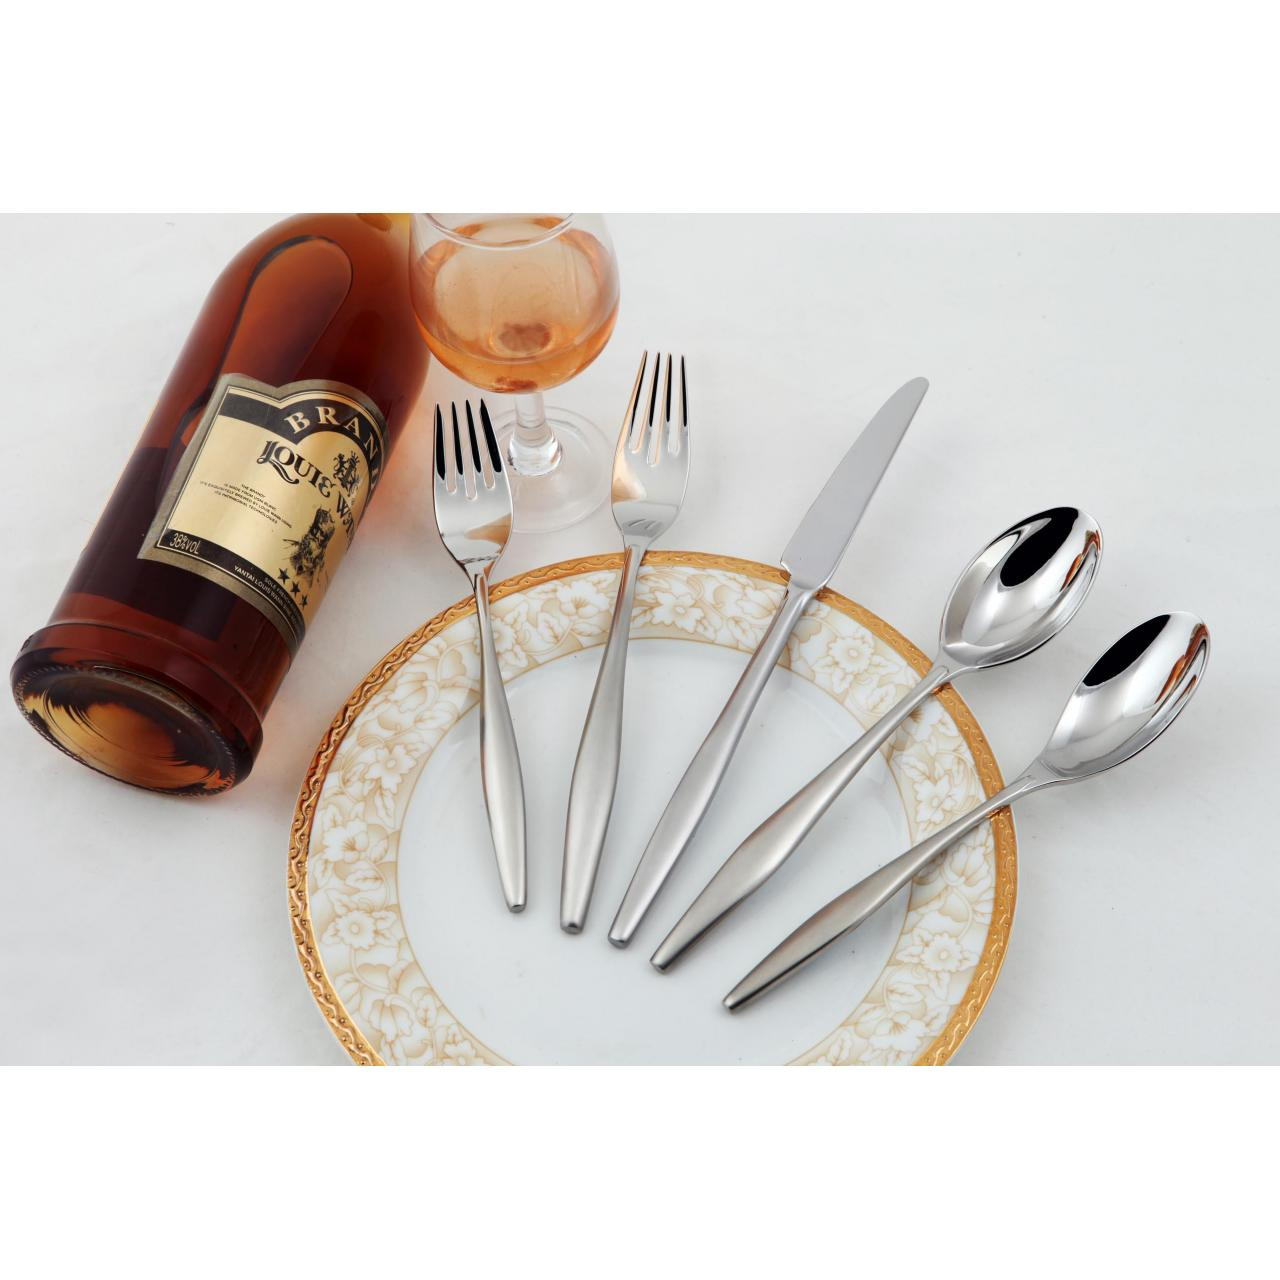 Tableware And Utensil Number: T-16